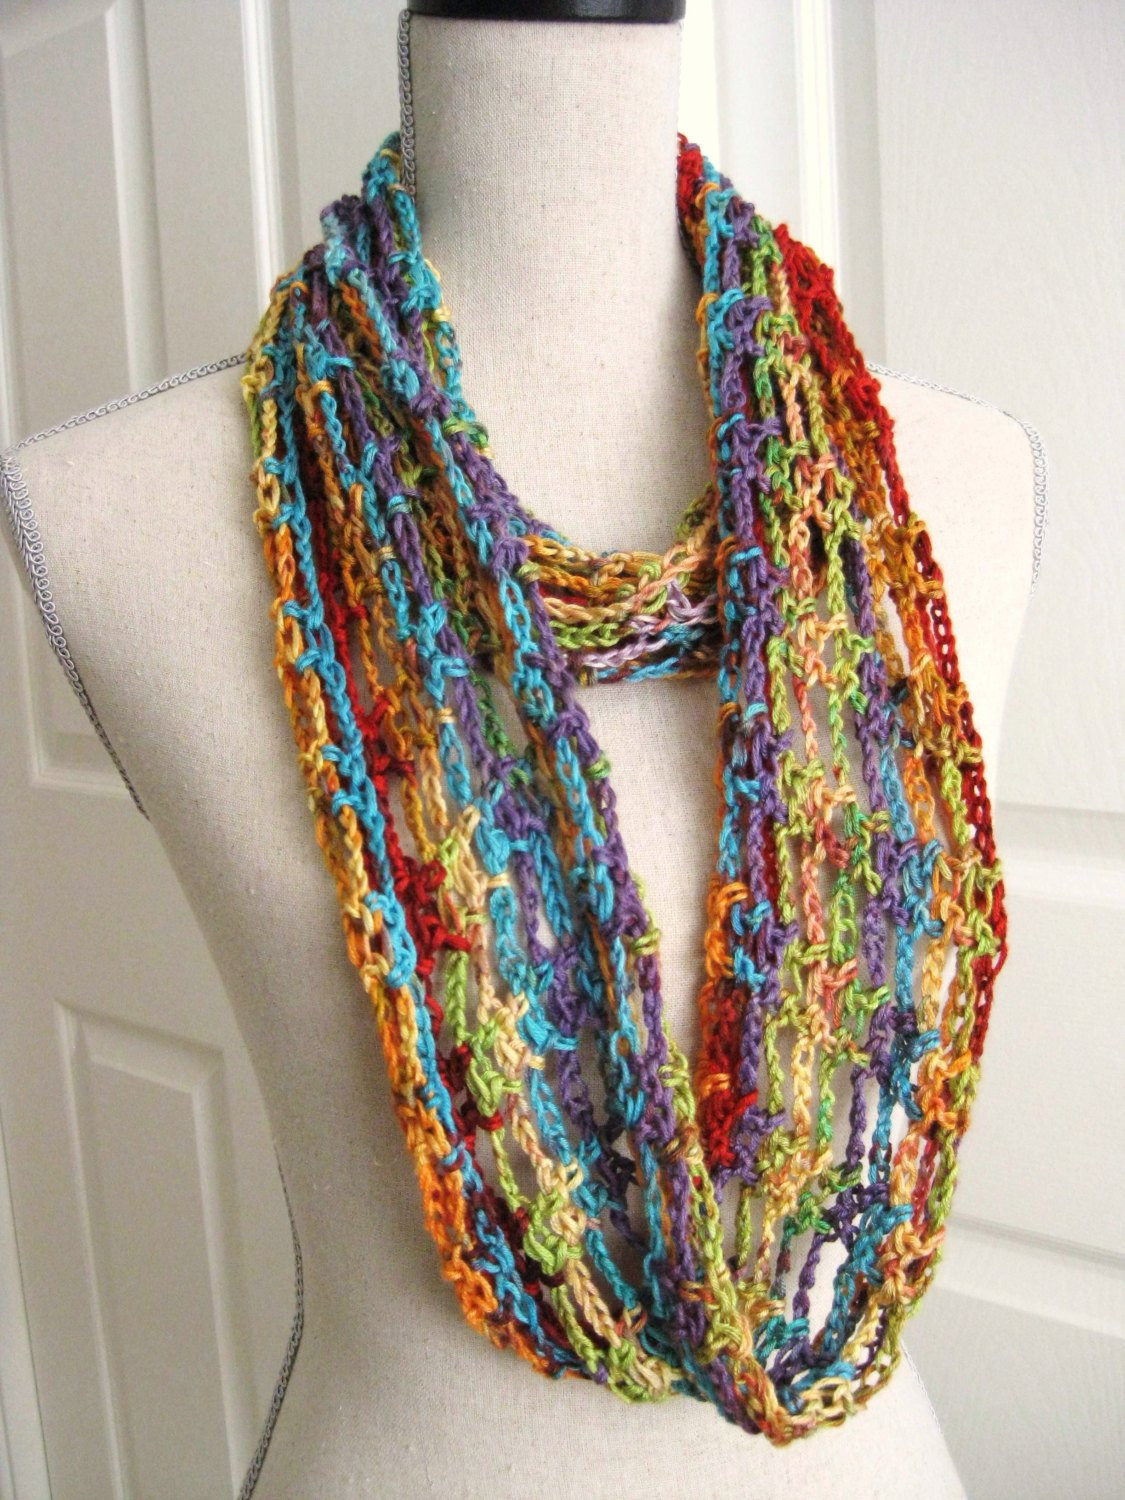 Crochet Cowl Scarf Inspirational Crochet Lacy Cowl Infinity Scarf Rainbow Colors Of Awesome 42 Pics Crochet Cowl Scarf